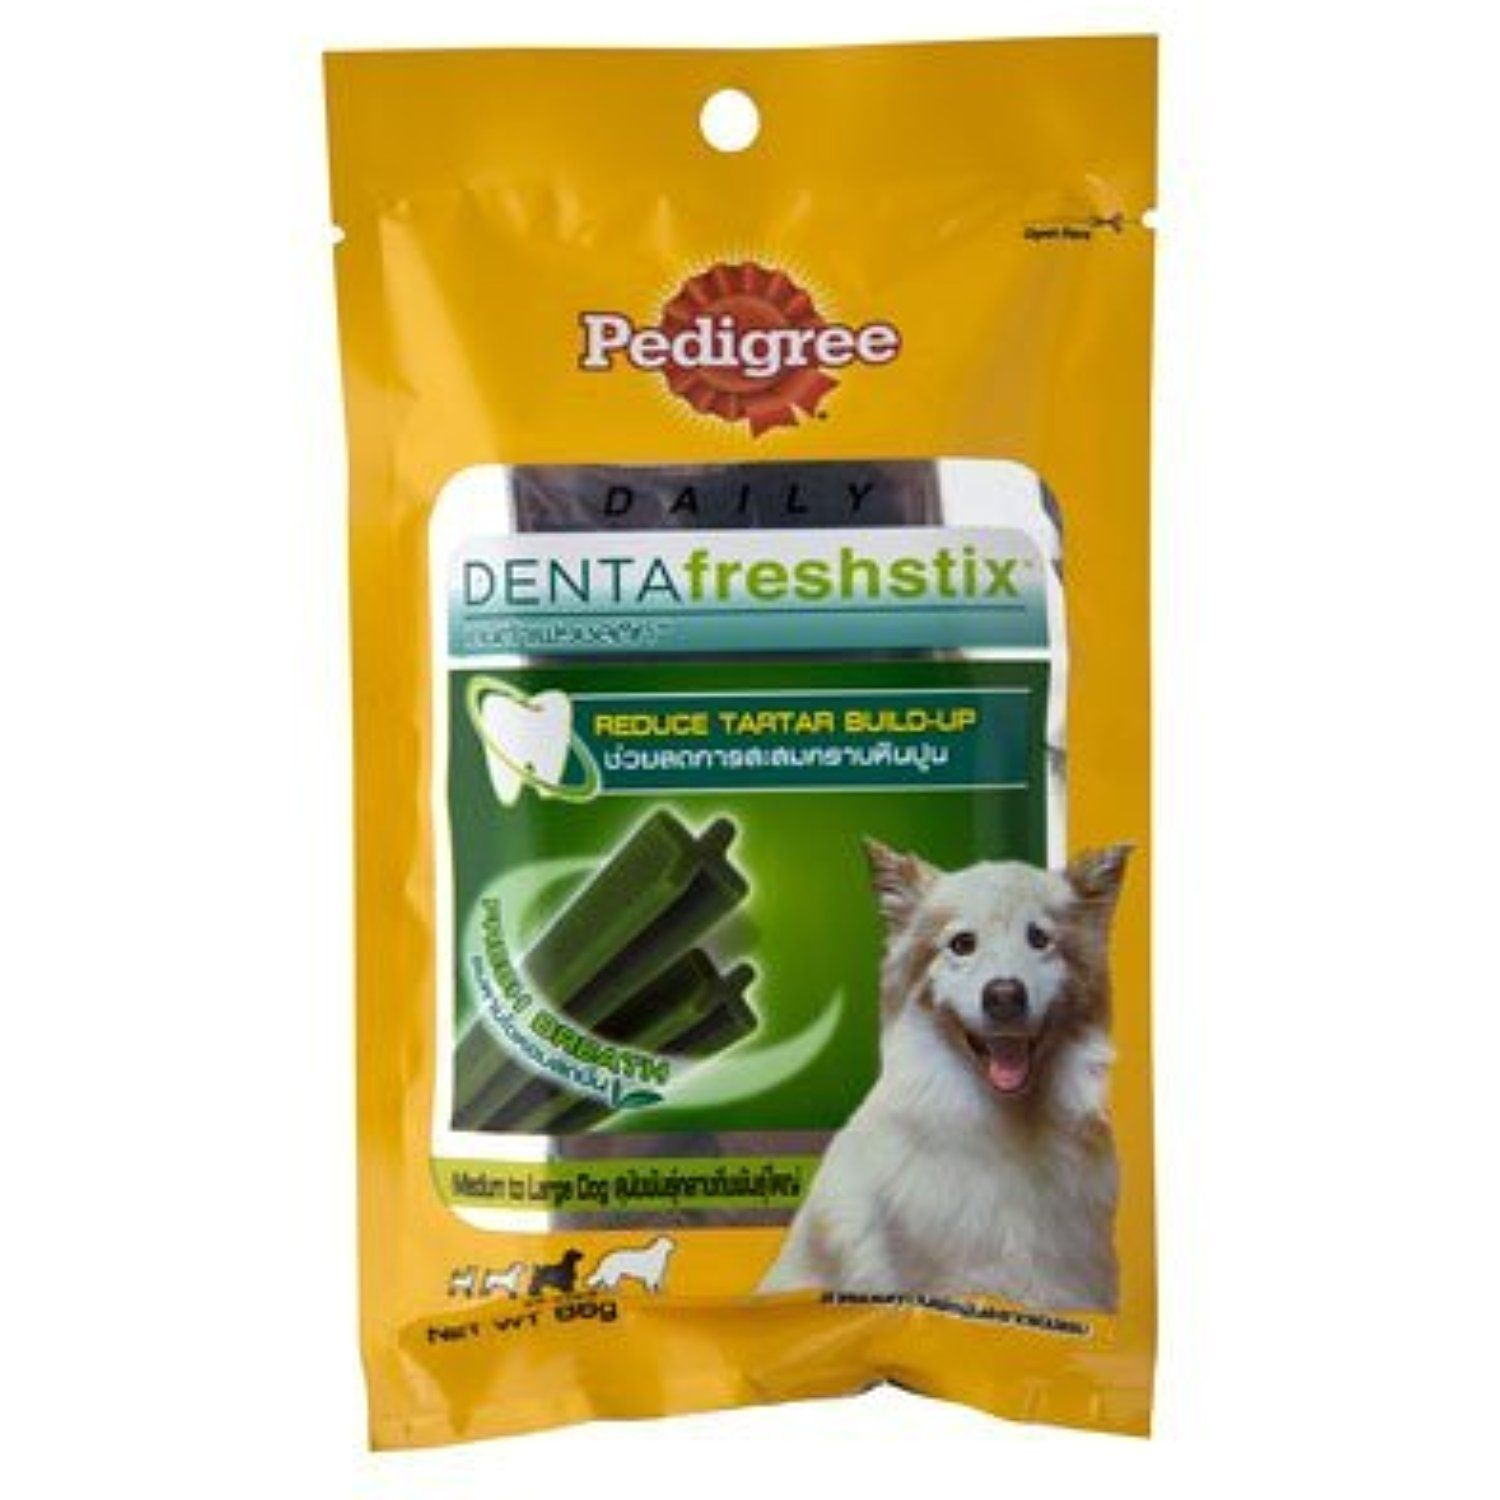 Pedigree Denta Fresh Stix Medium Large Dog 86g You Can Learn